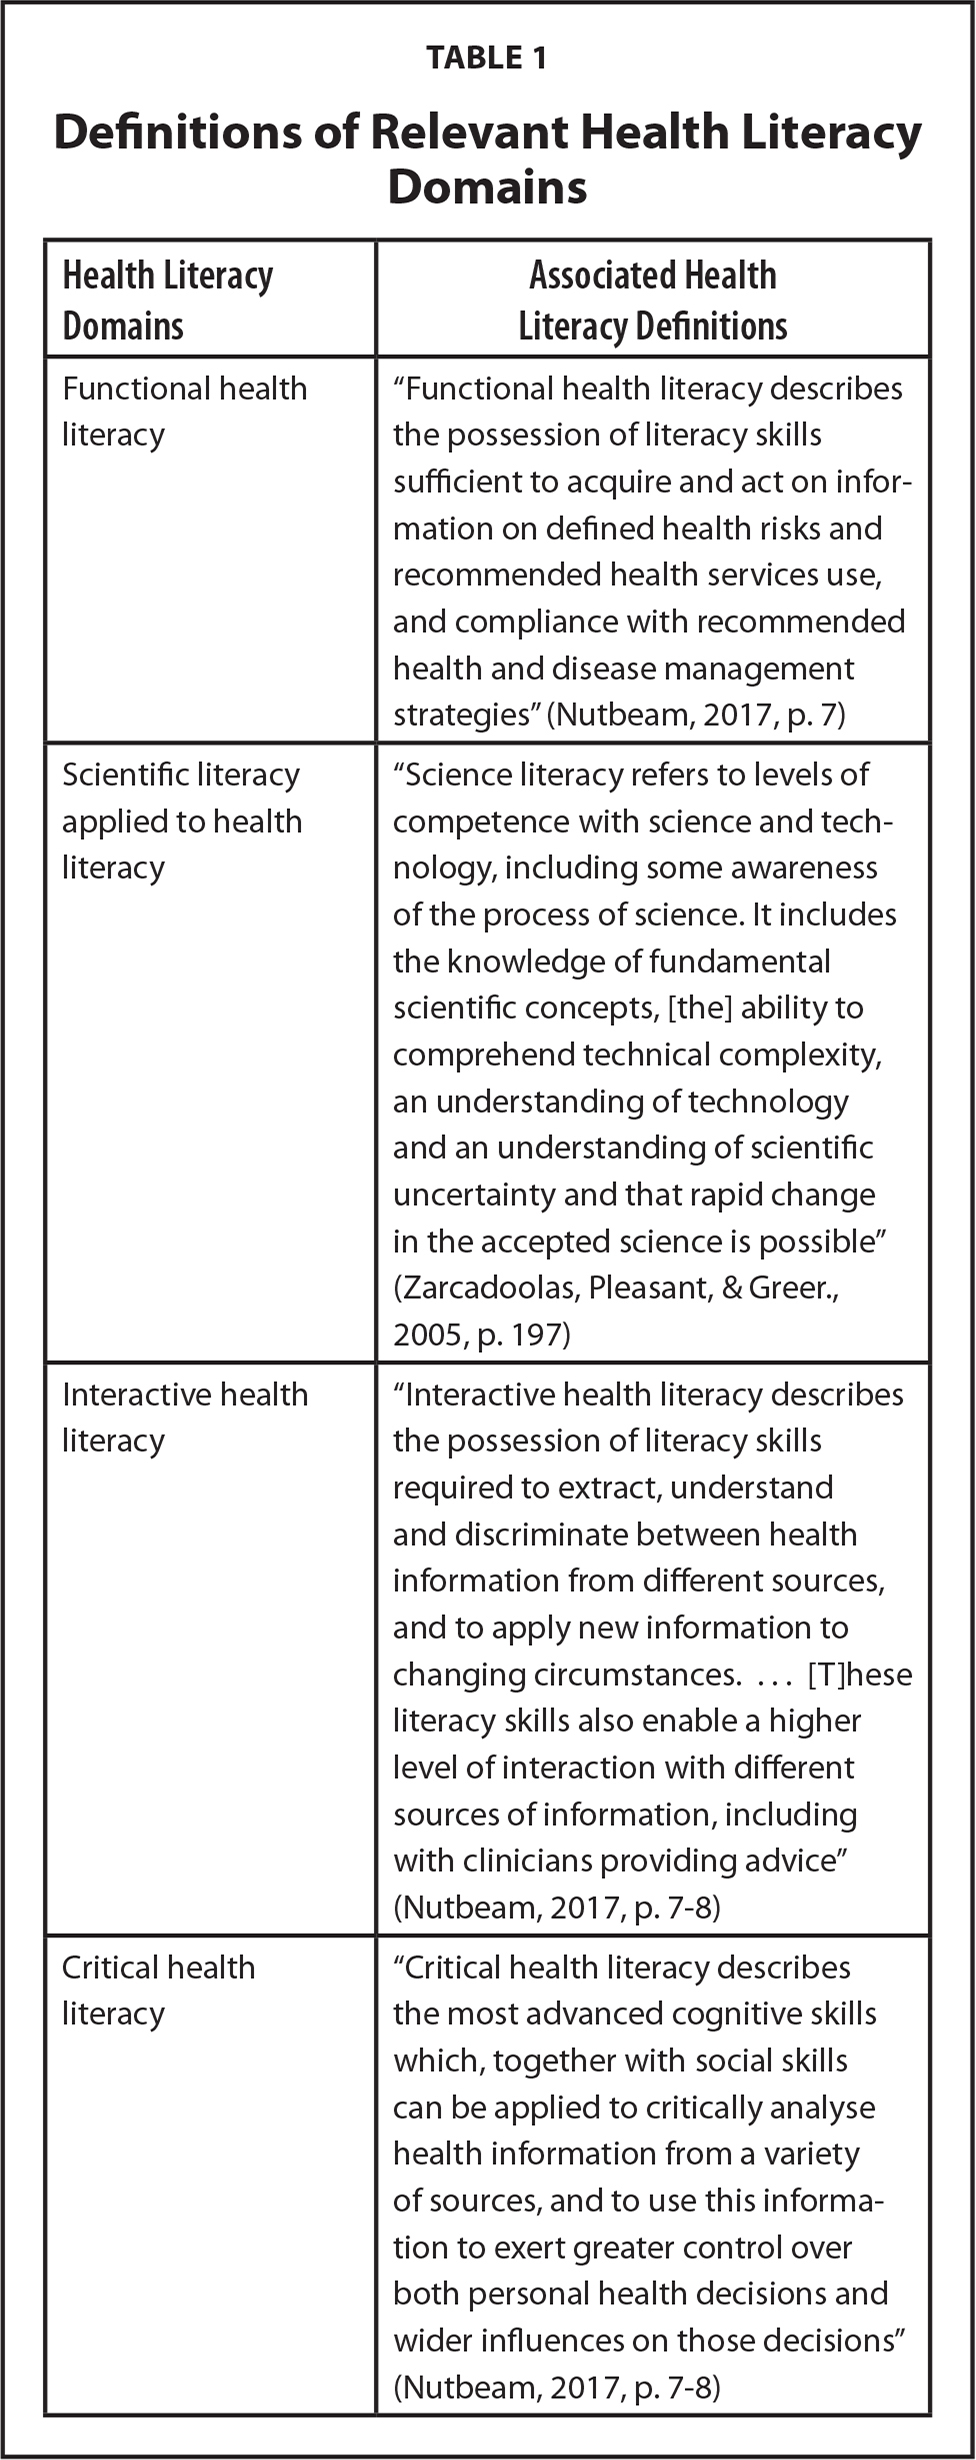 Definitions of Relevant Health Literacy Domains